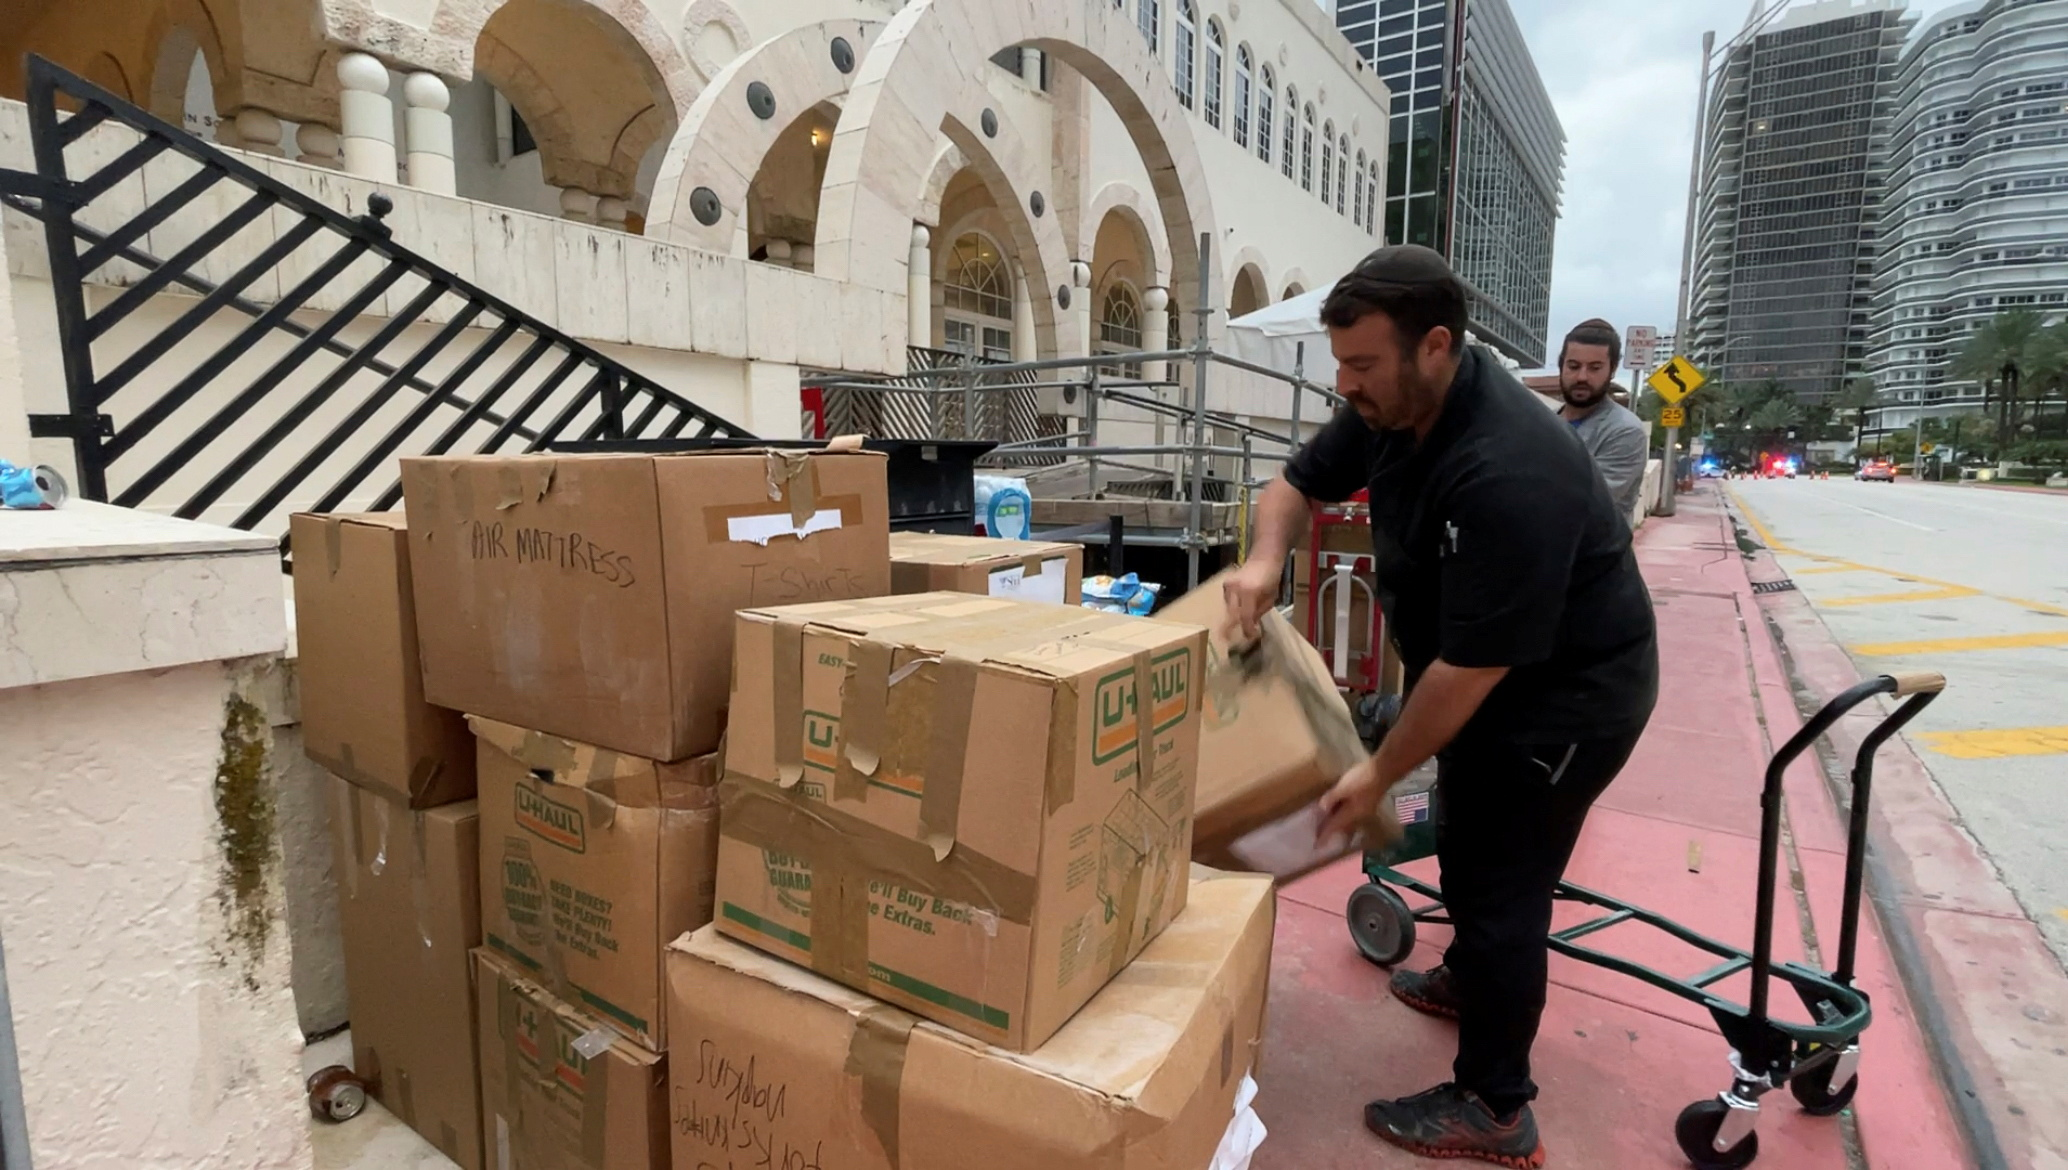 Volunteers pack boxes of donated goods to deliver to families of victims in Surfside, Florida, U.S. June 29, 2021. REUTERS/Katanga Johnson